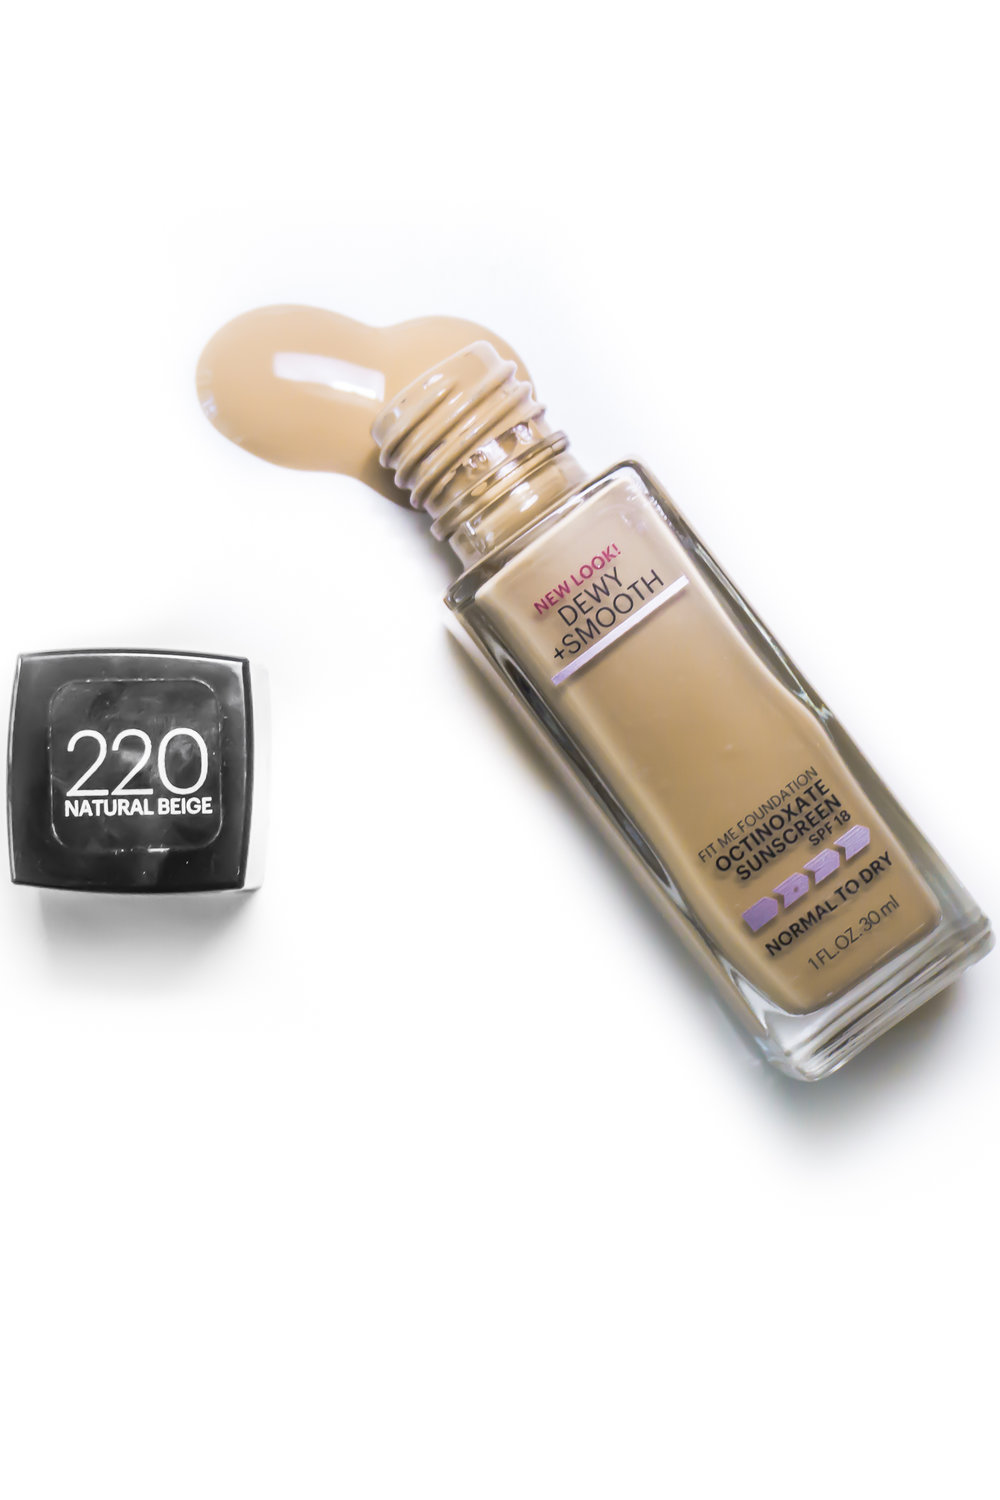 SamHodgett_Beauty_Review_Maybelline_Fit_Me_Dewy_and_Smooth_1.jpg